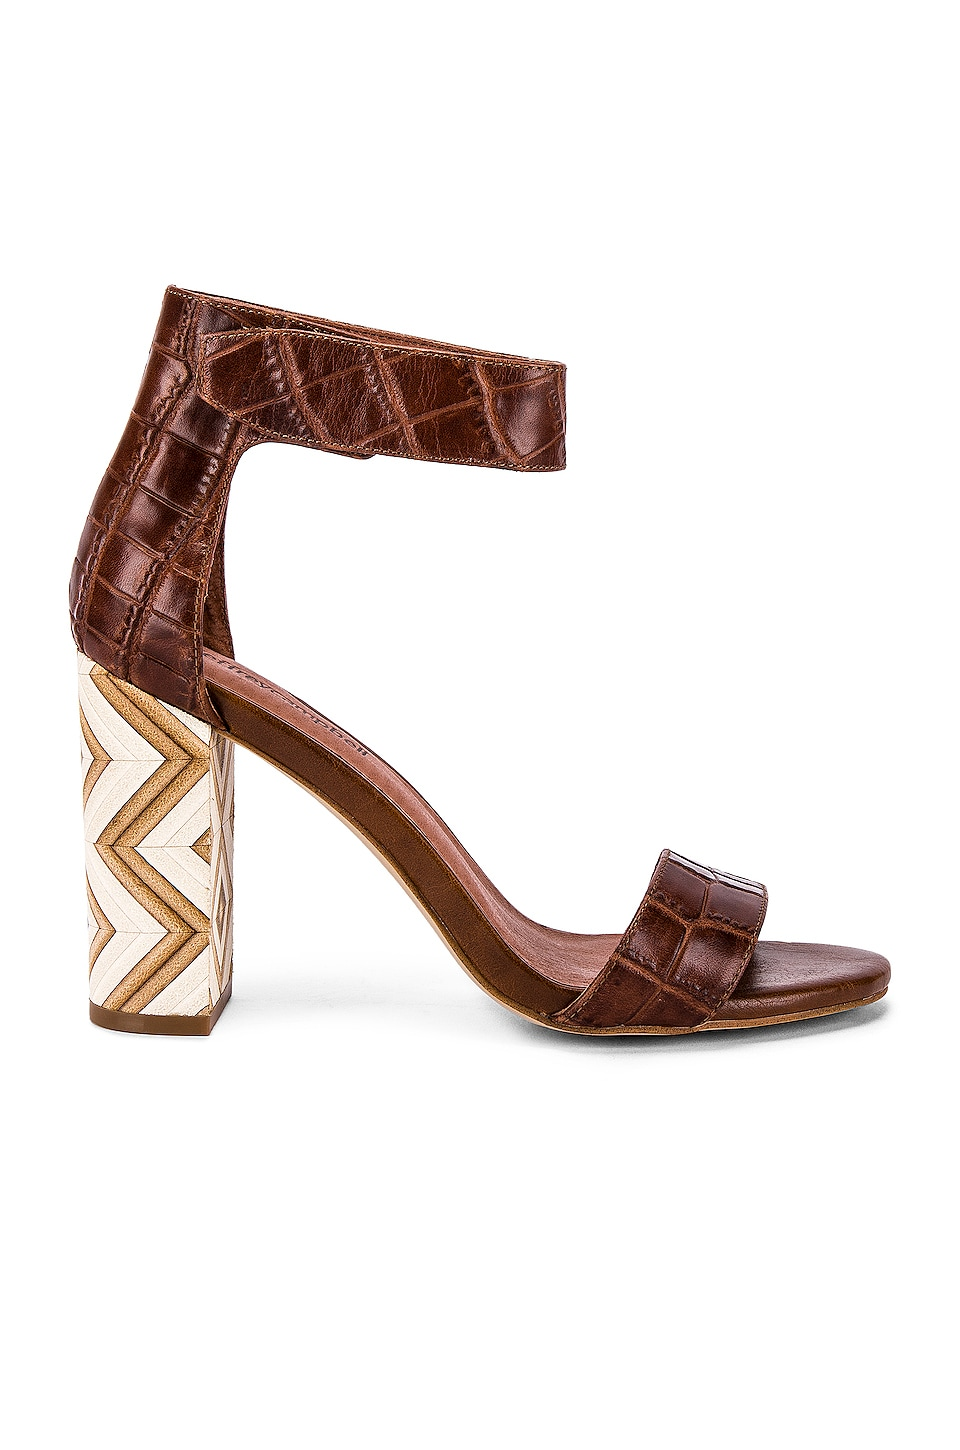 Jeffrey Campbell Lindsay Sandal in Brown Croc & Zig Zag